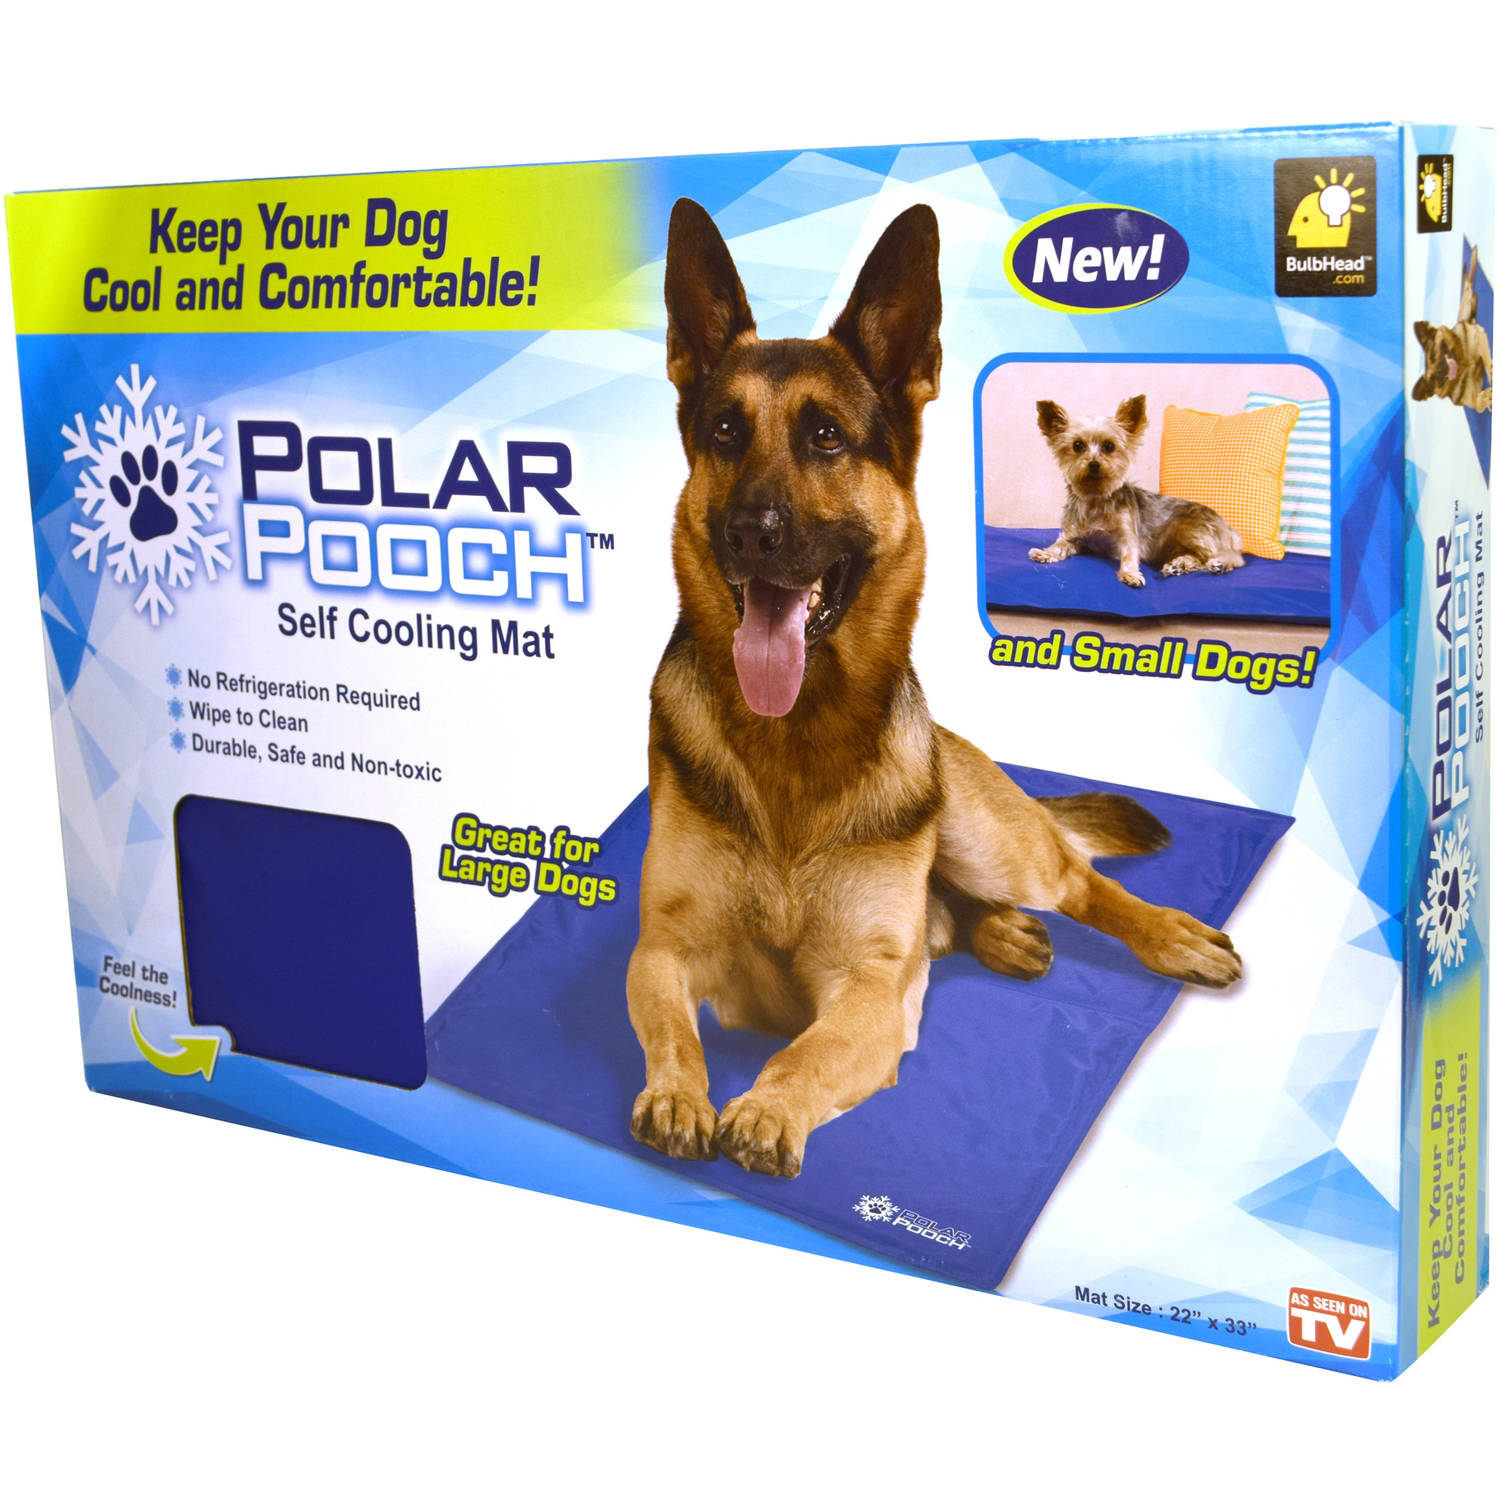 Polar Pooch Pet Cooling Mat